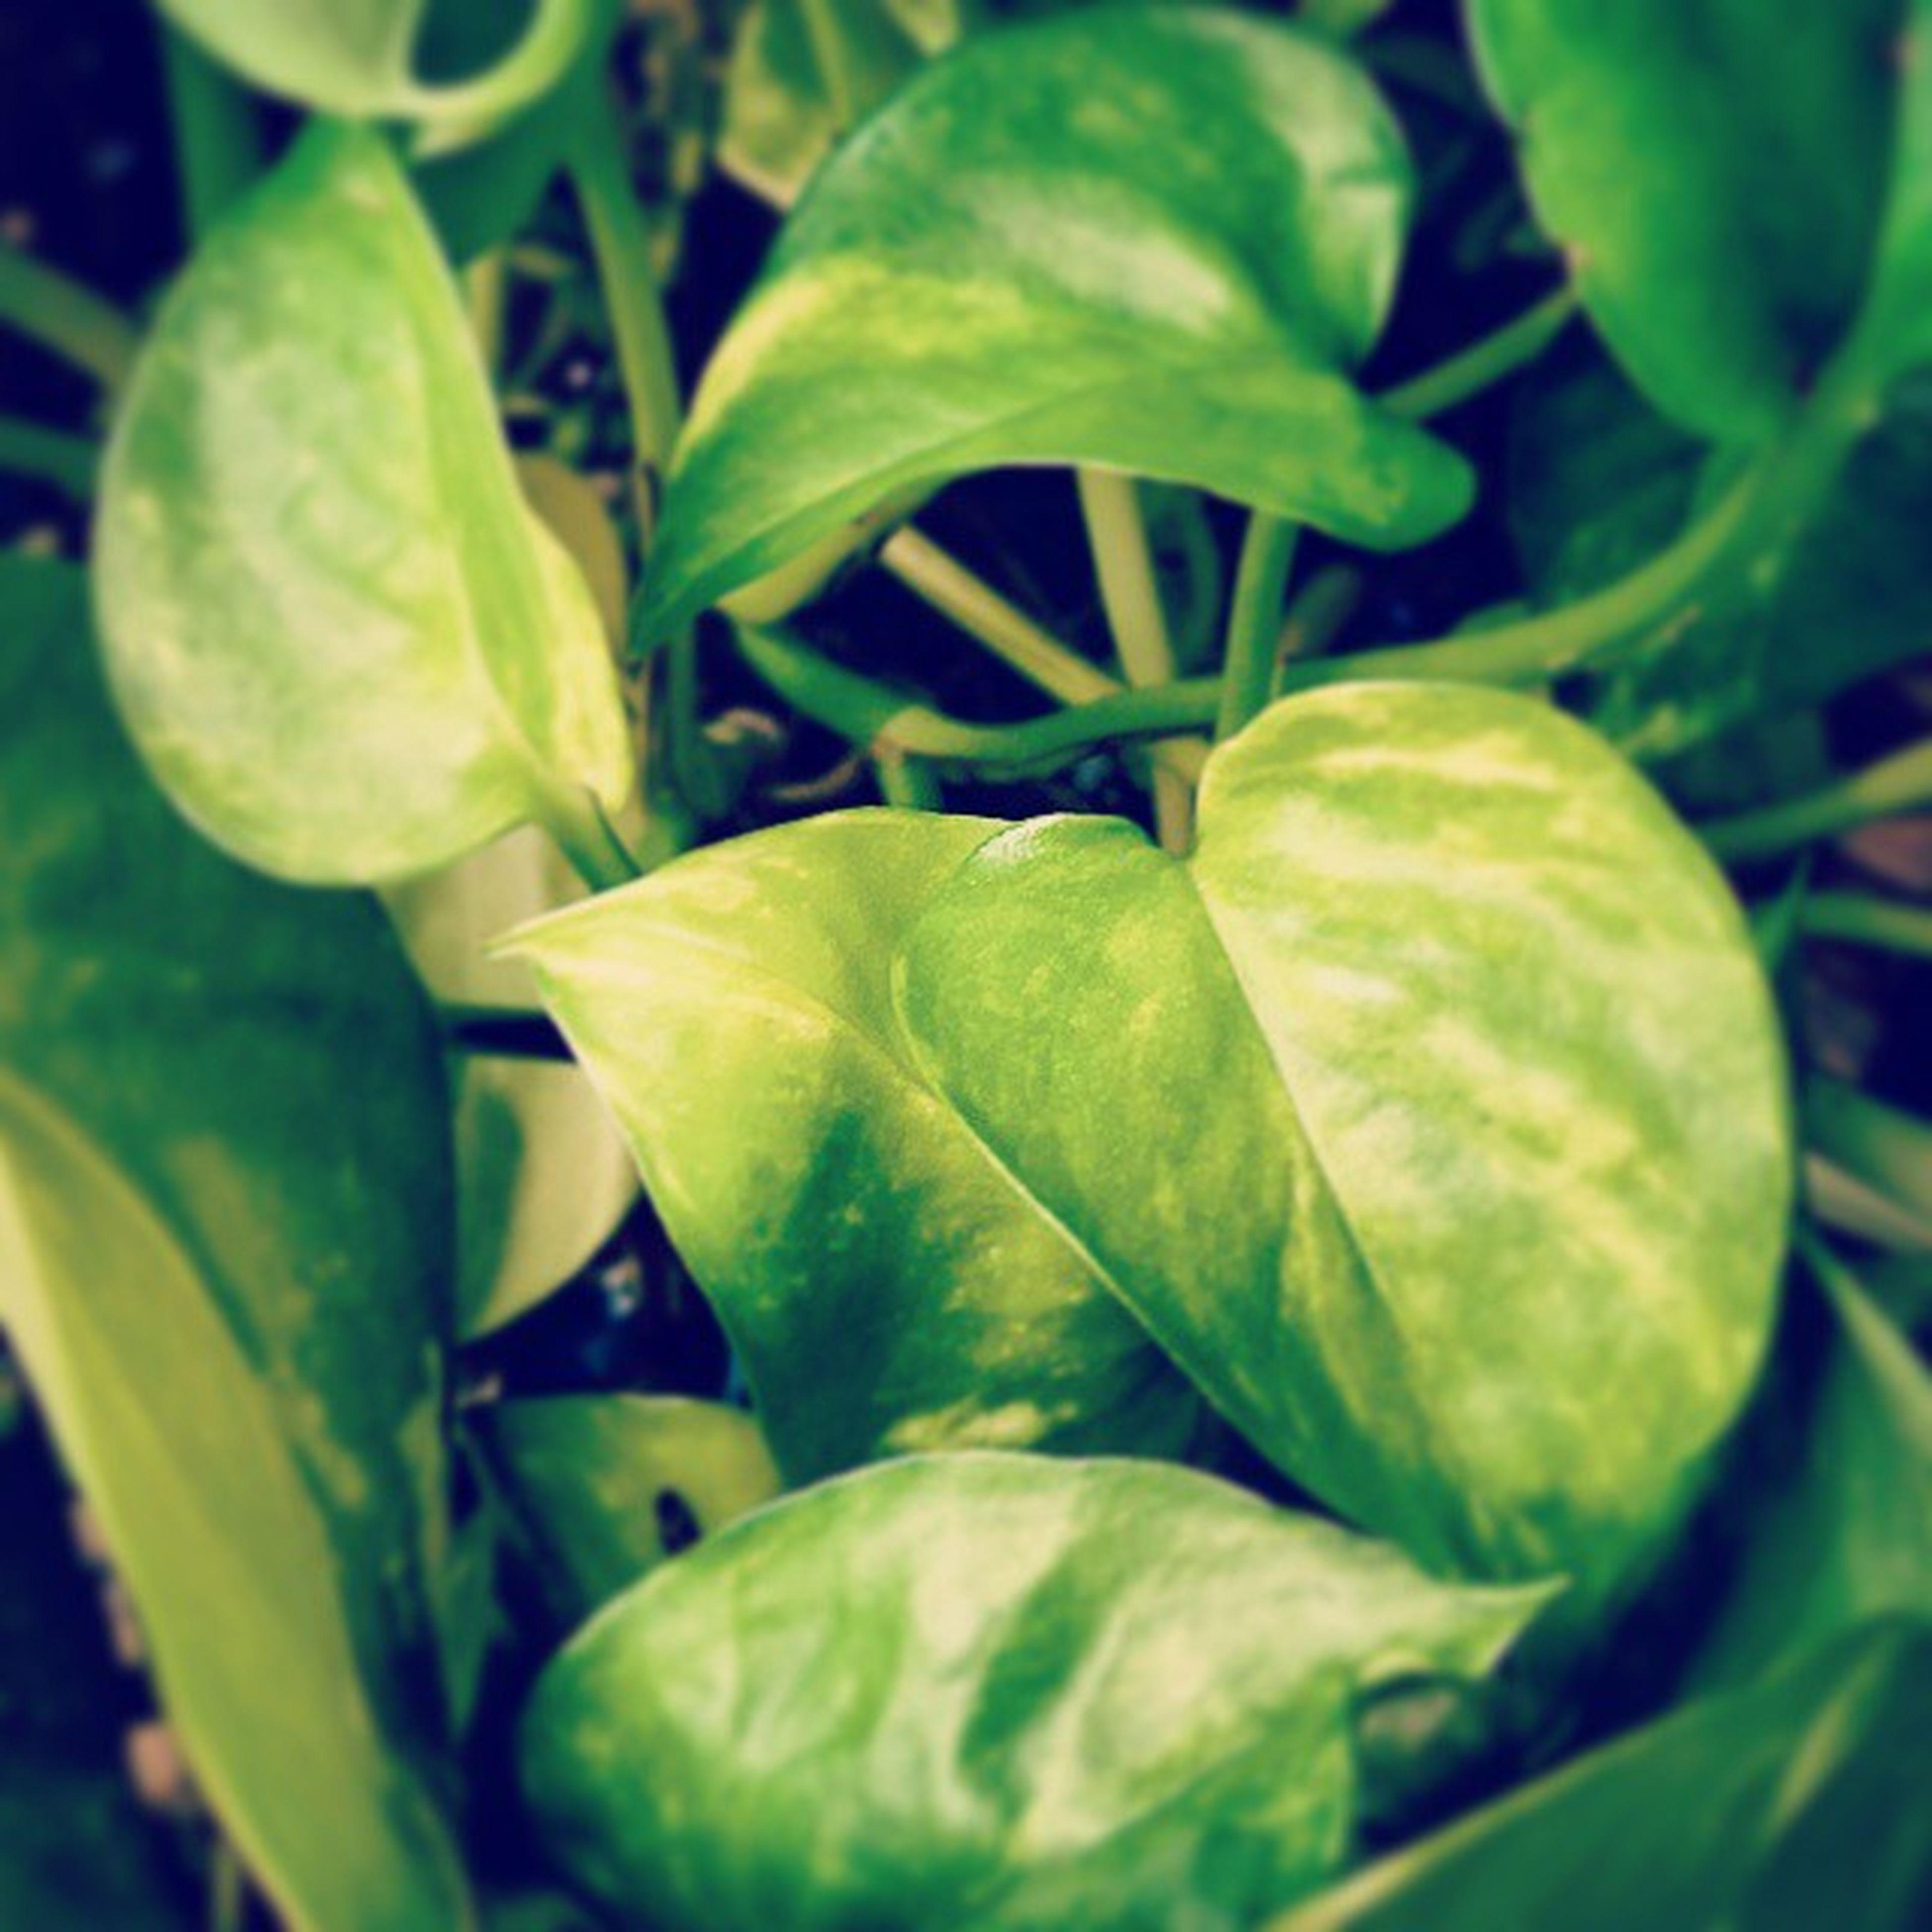 green color, leaf, freshness, growth, close-up, plant, healthy eating, food and drink, green, nature, food, vegetable, beauty in nature, leaf vein, no people, leaves, selective focus, high angle view, organic, fruit